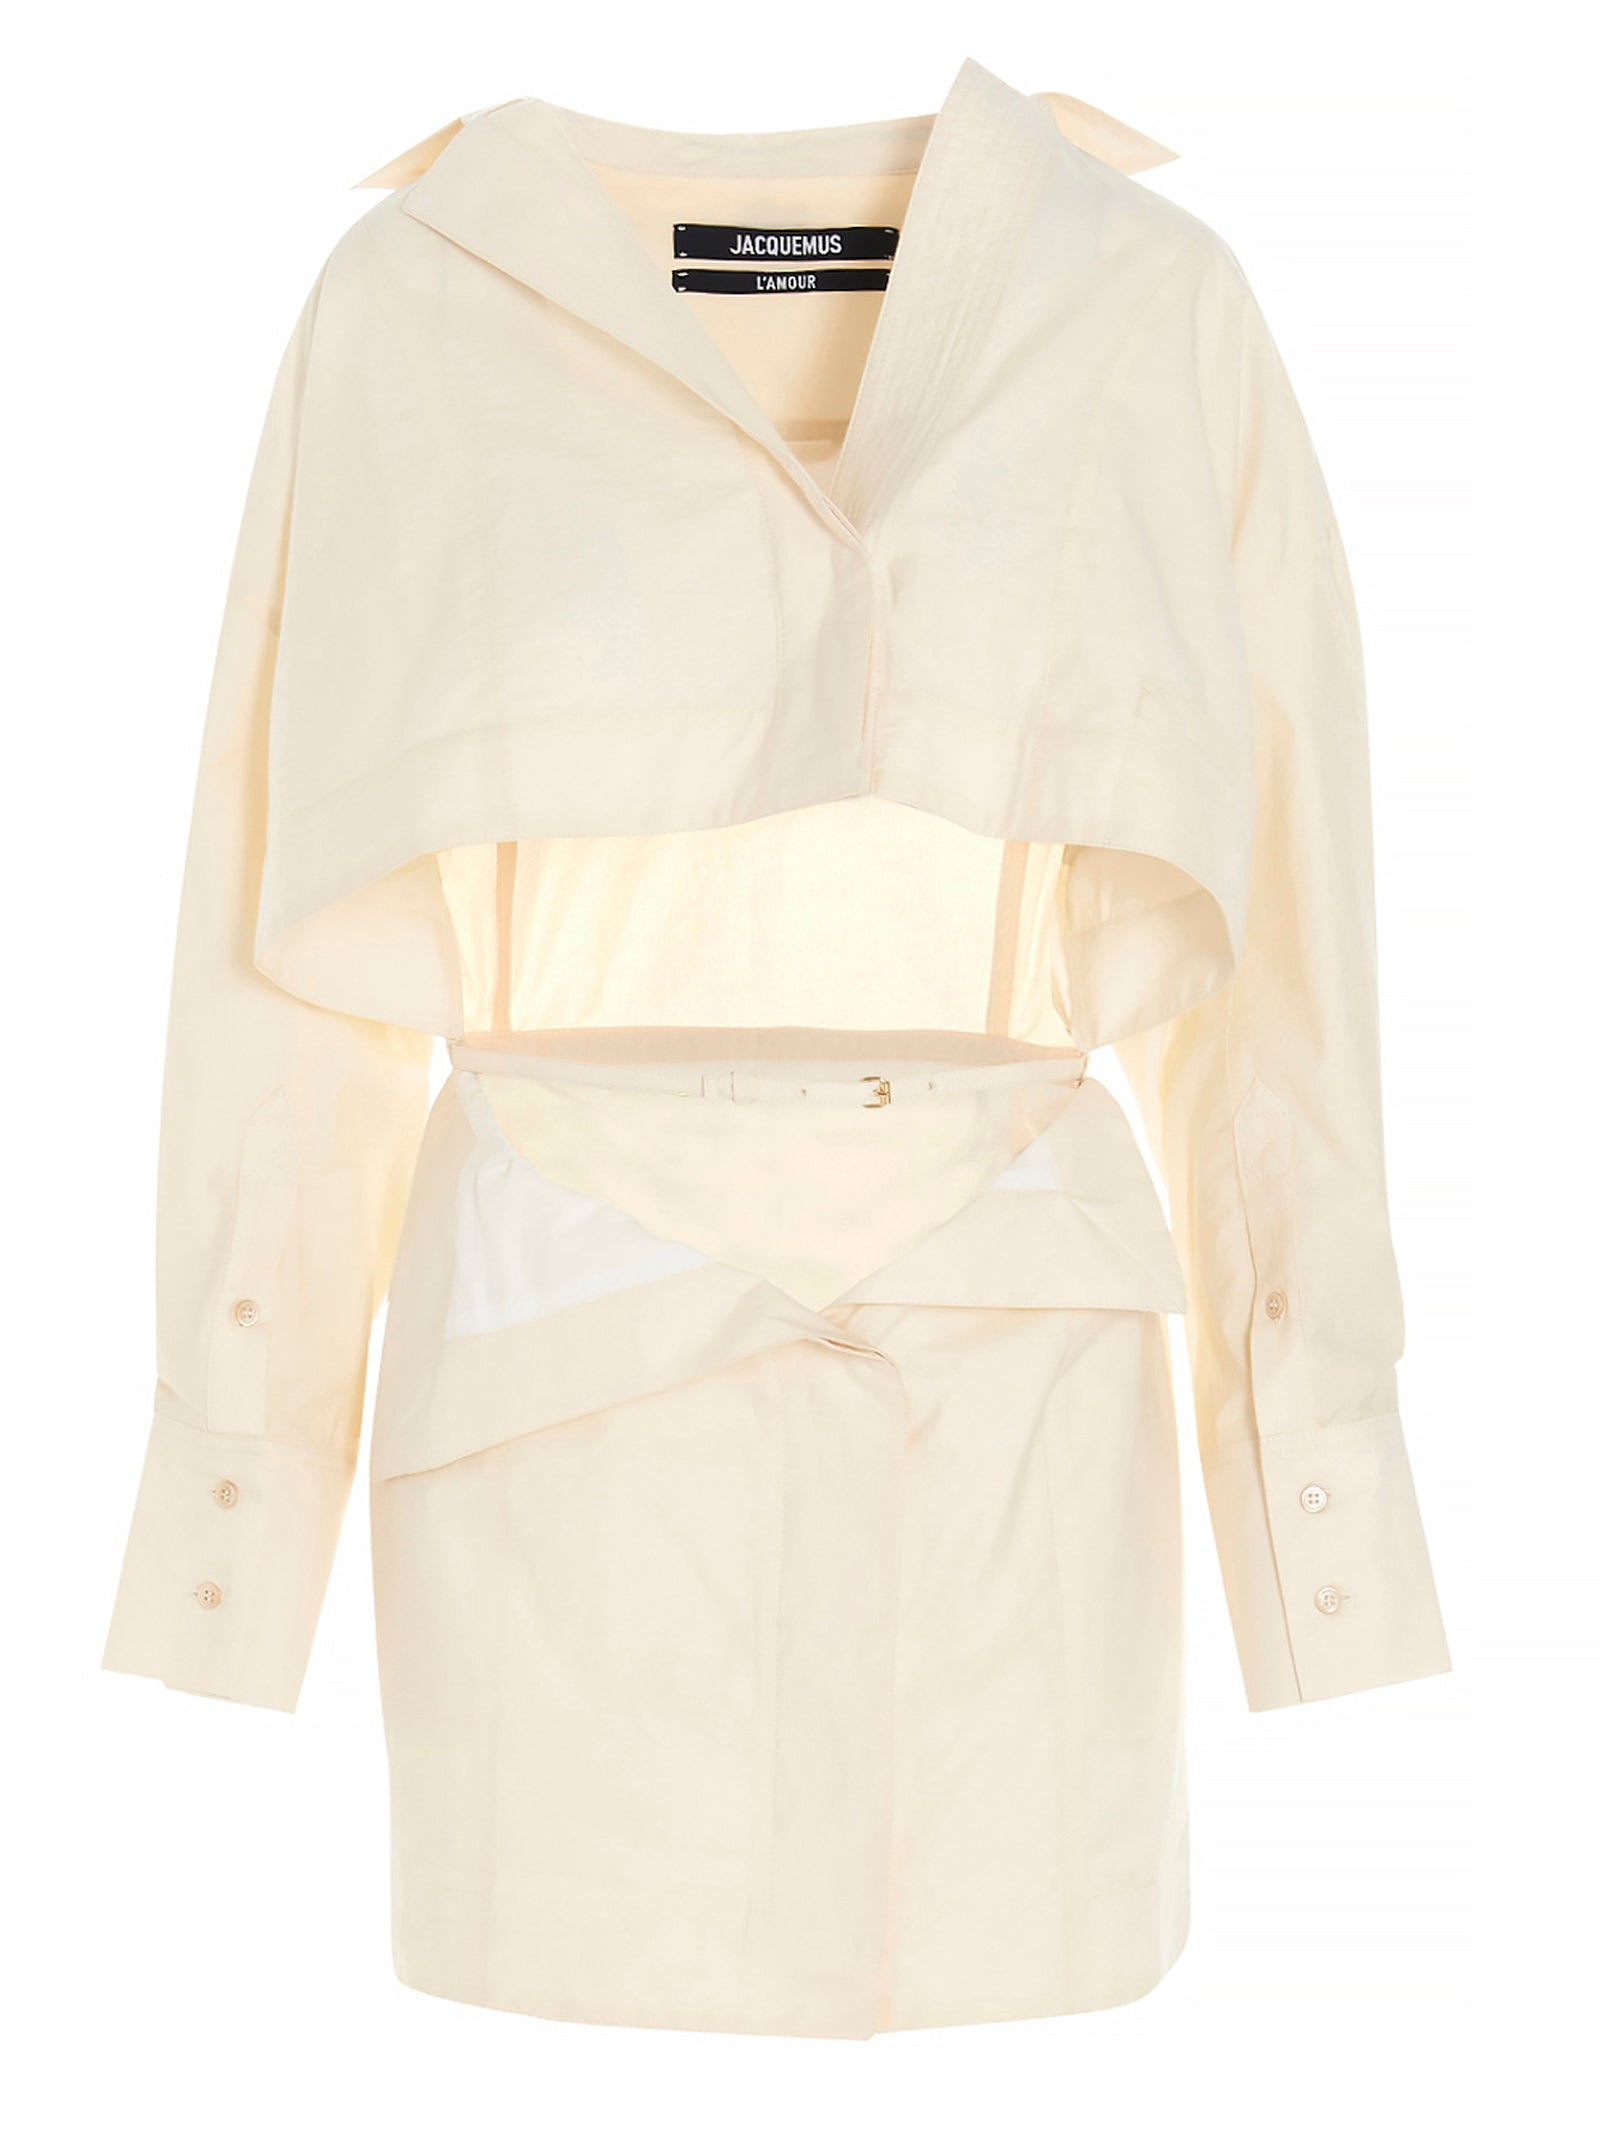 Jacquemus JACQUEMUS LA ROBE TERRAIO MINI SHIRT DRESS